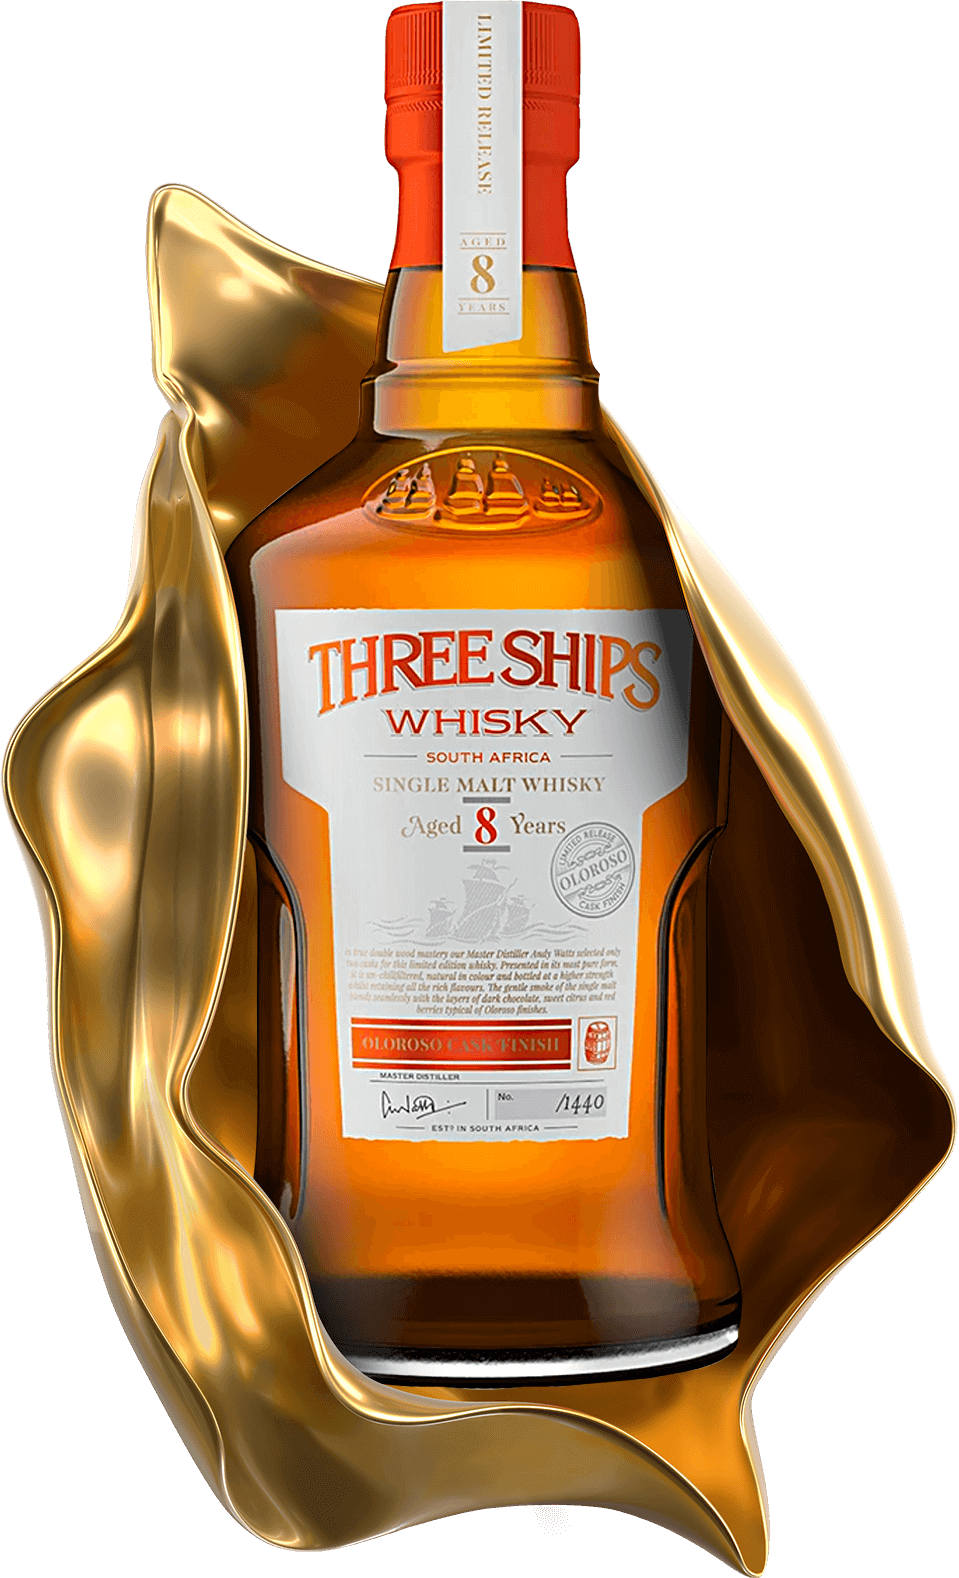 THREE SHIPS WHISKY 8 YEAR OLD SINGLE MALT OLOROSO CASK FINISH